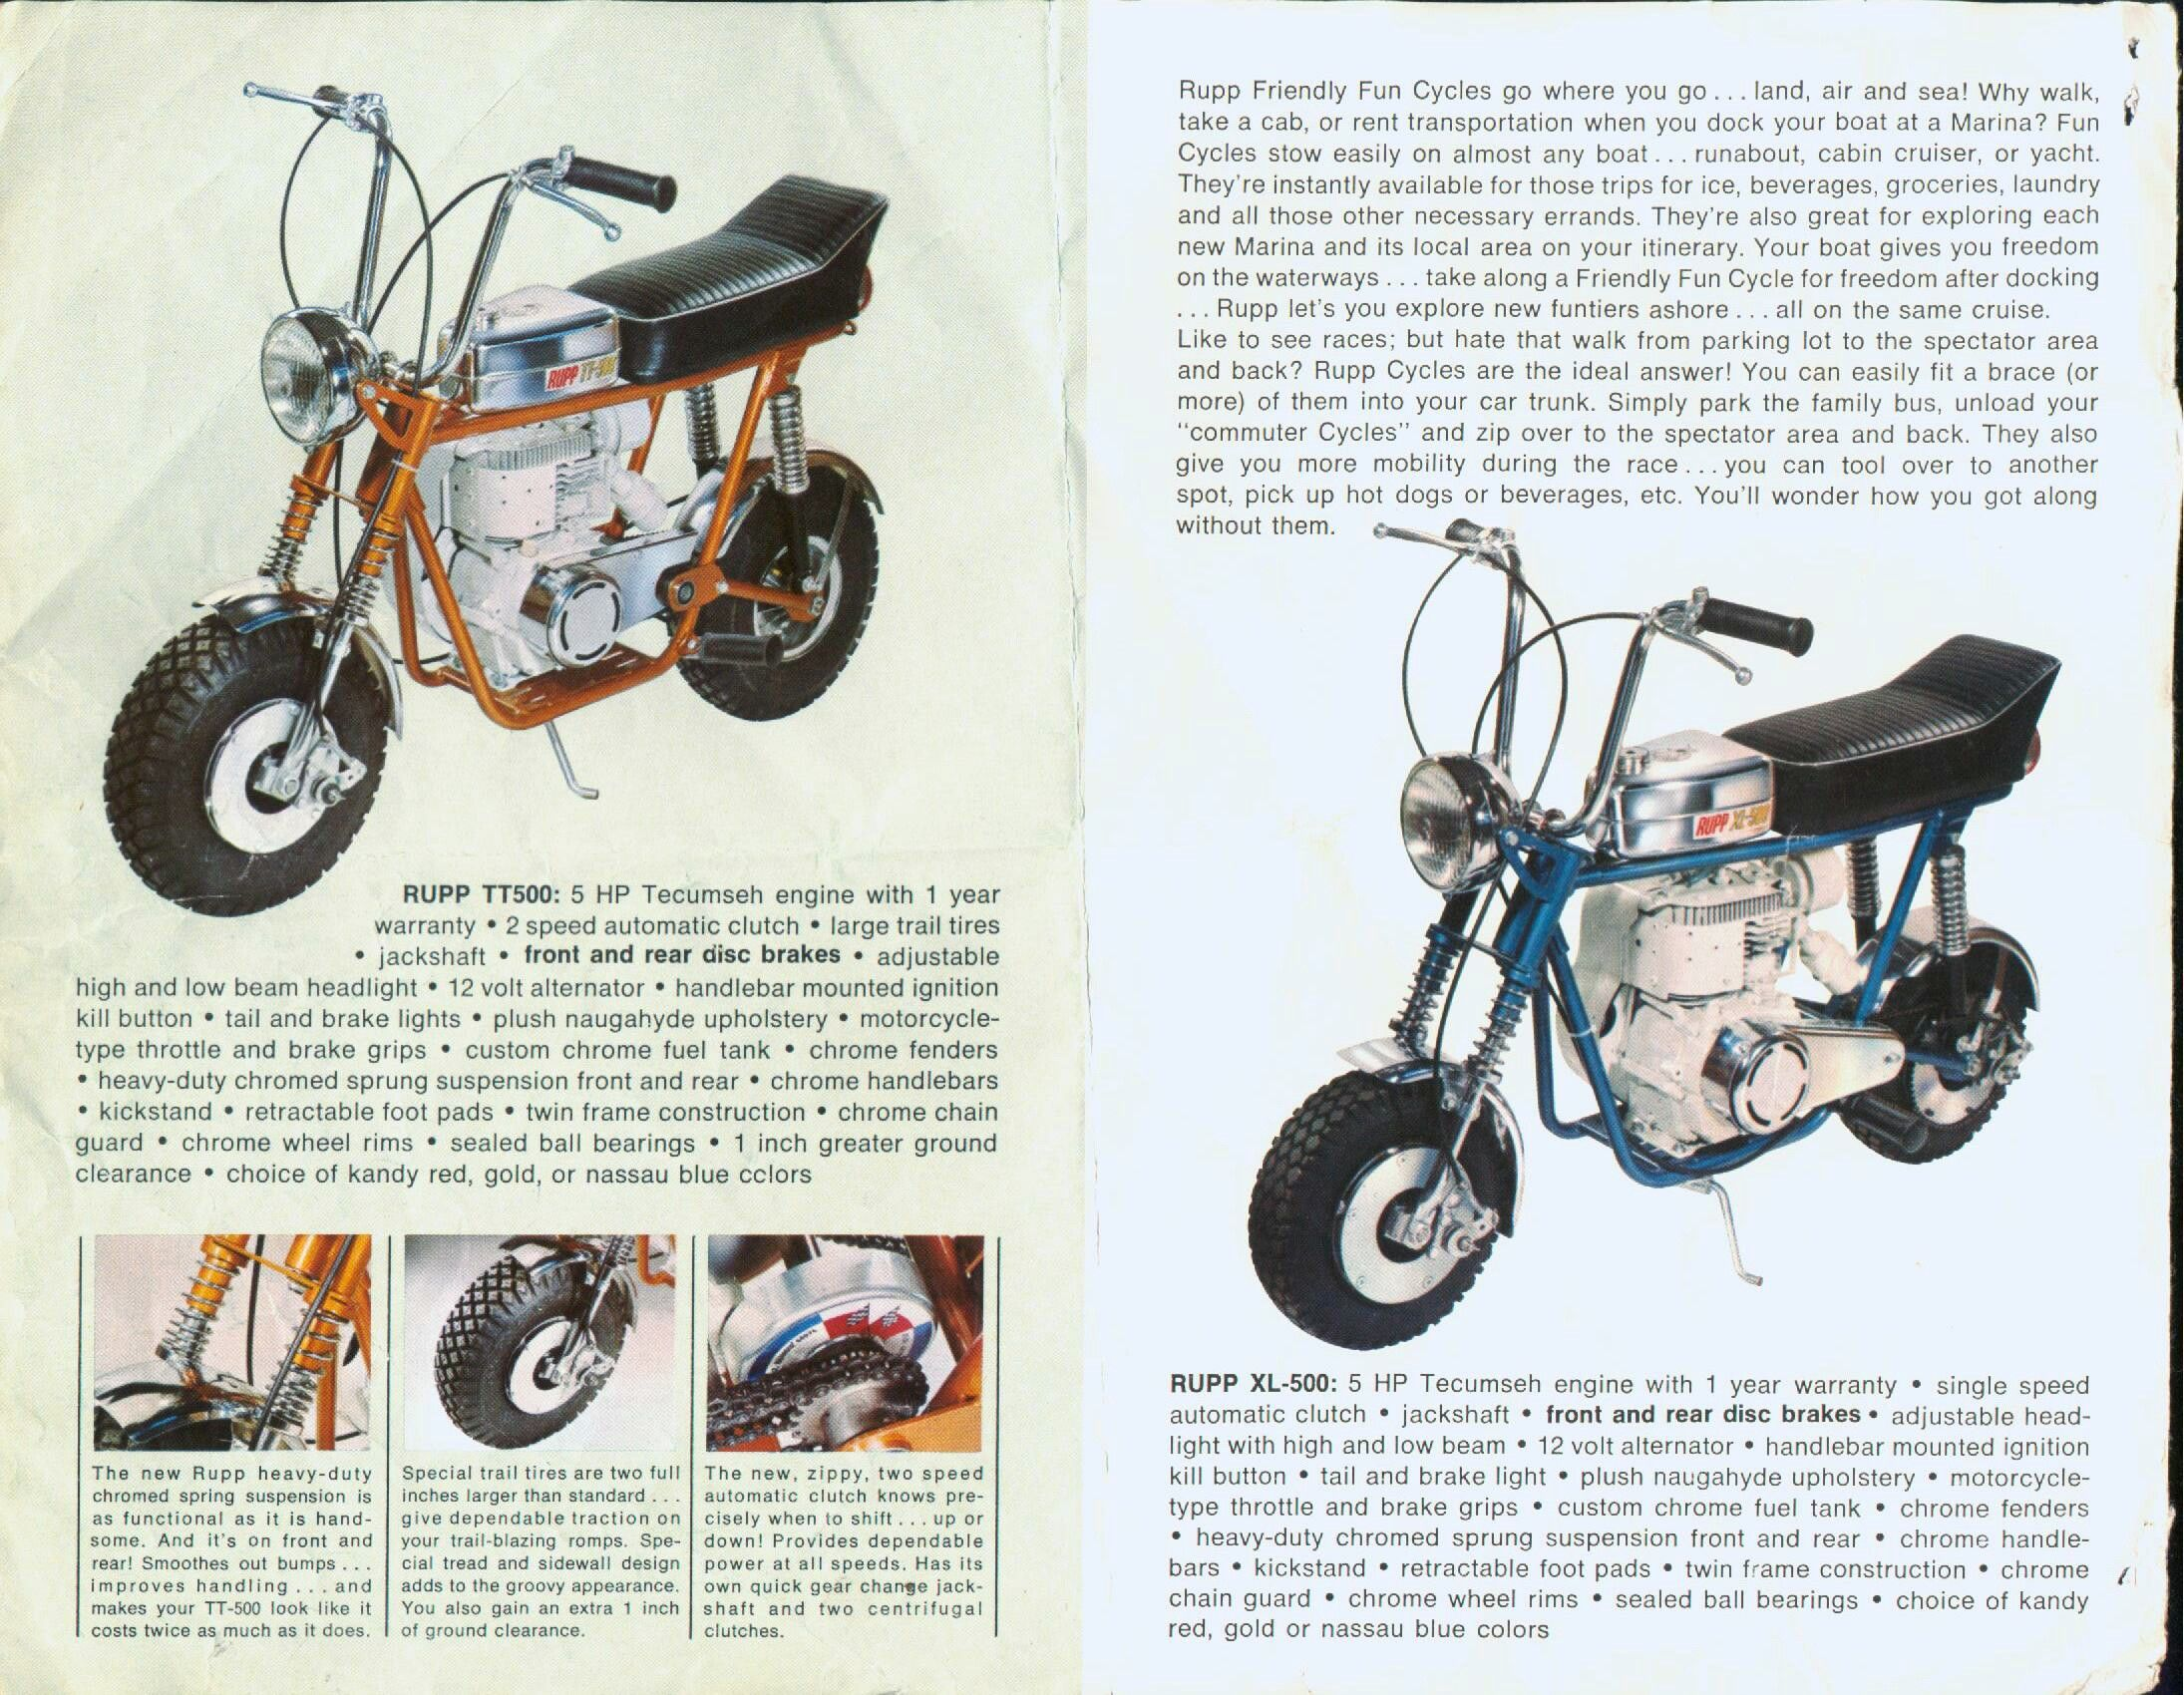 Rupp TT500 & XL500 | Rupp & other vintage mini bikes | Pinterest ...